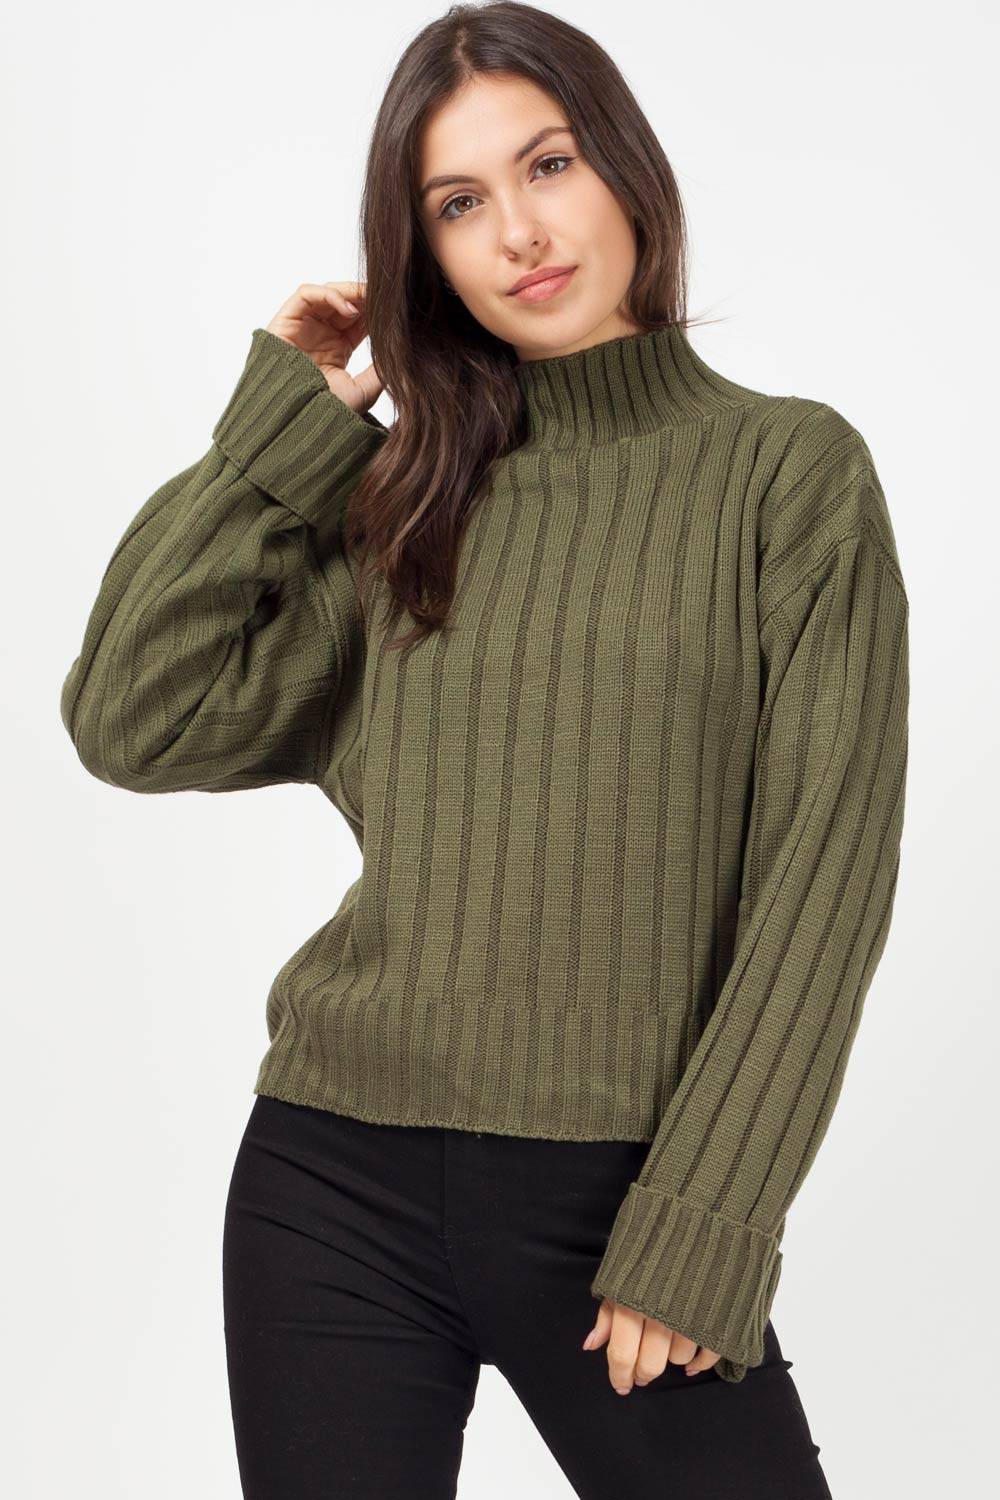 khaki high neck jumper womens